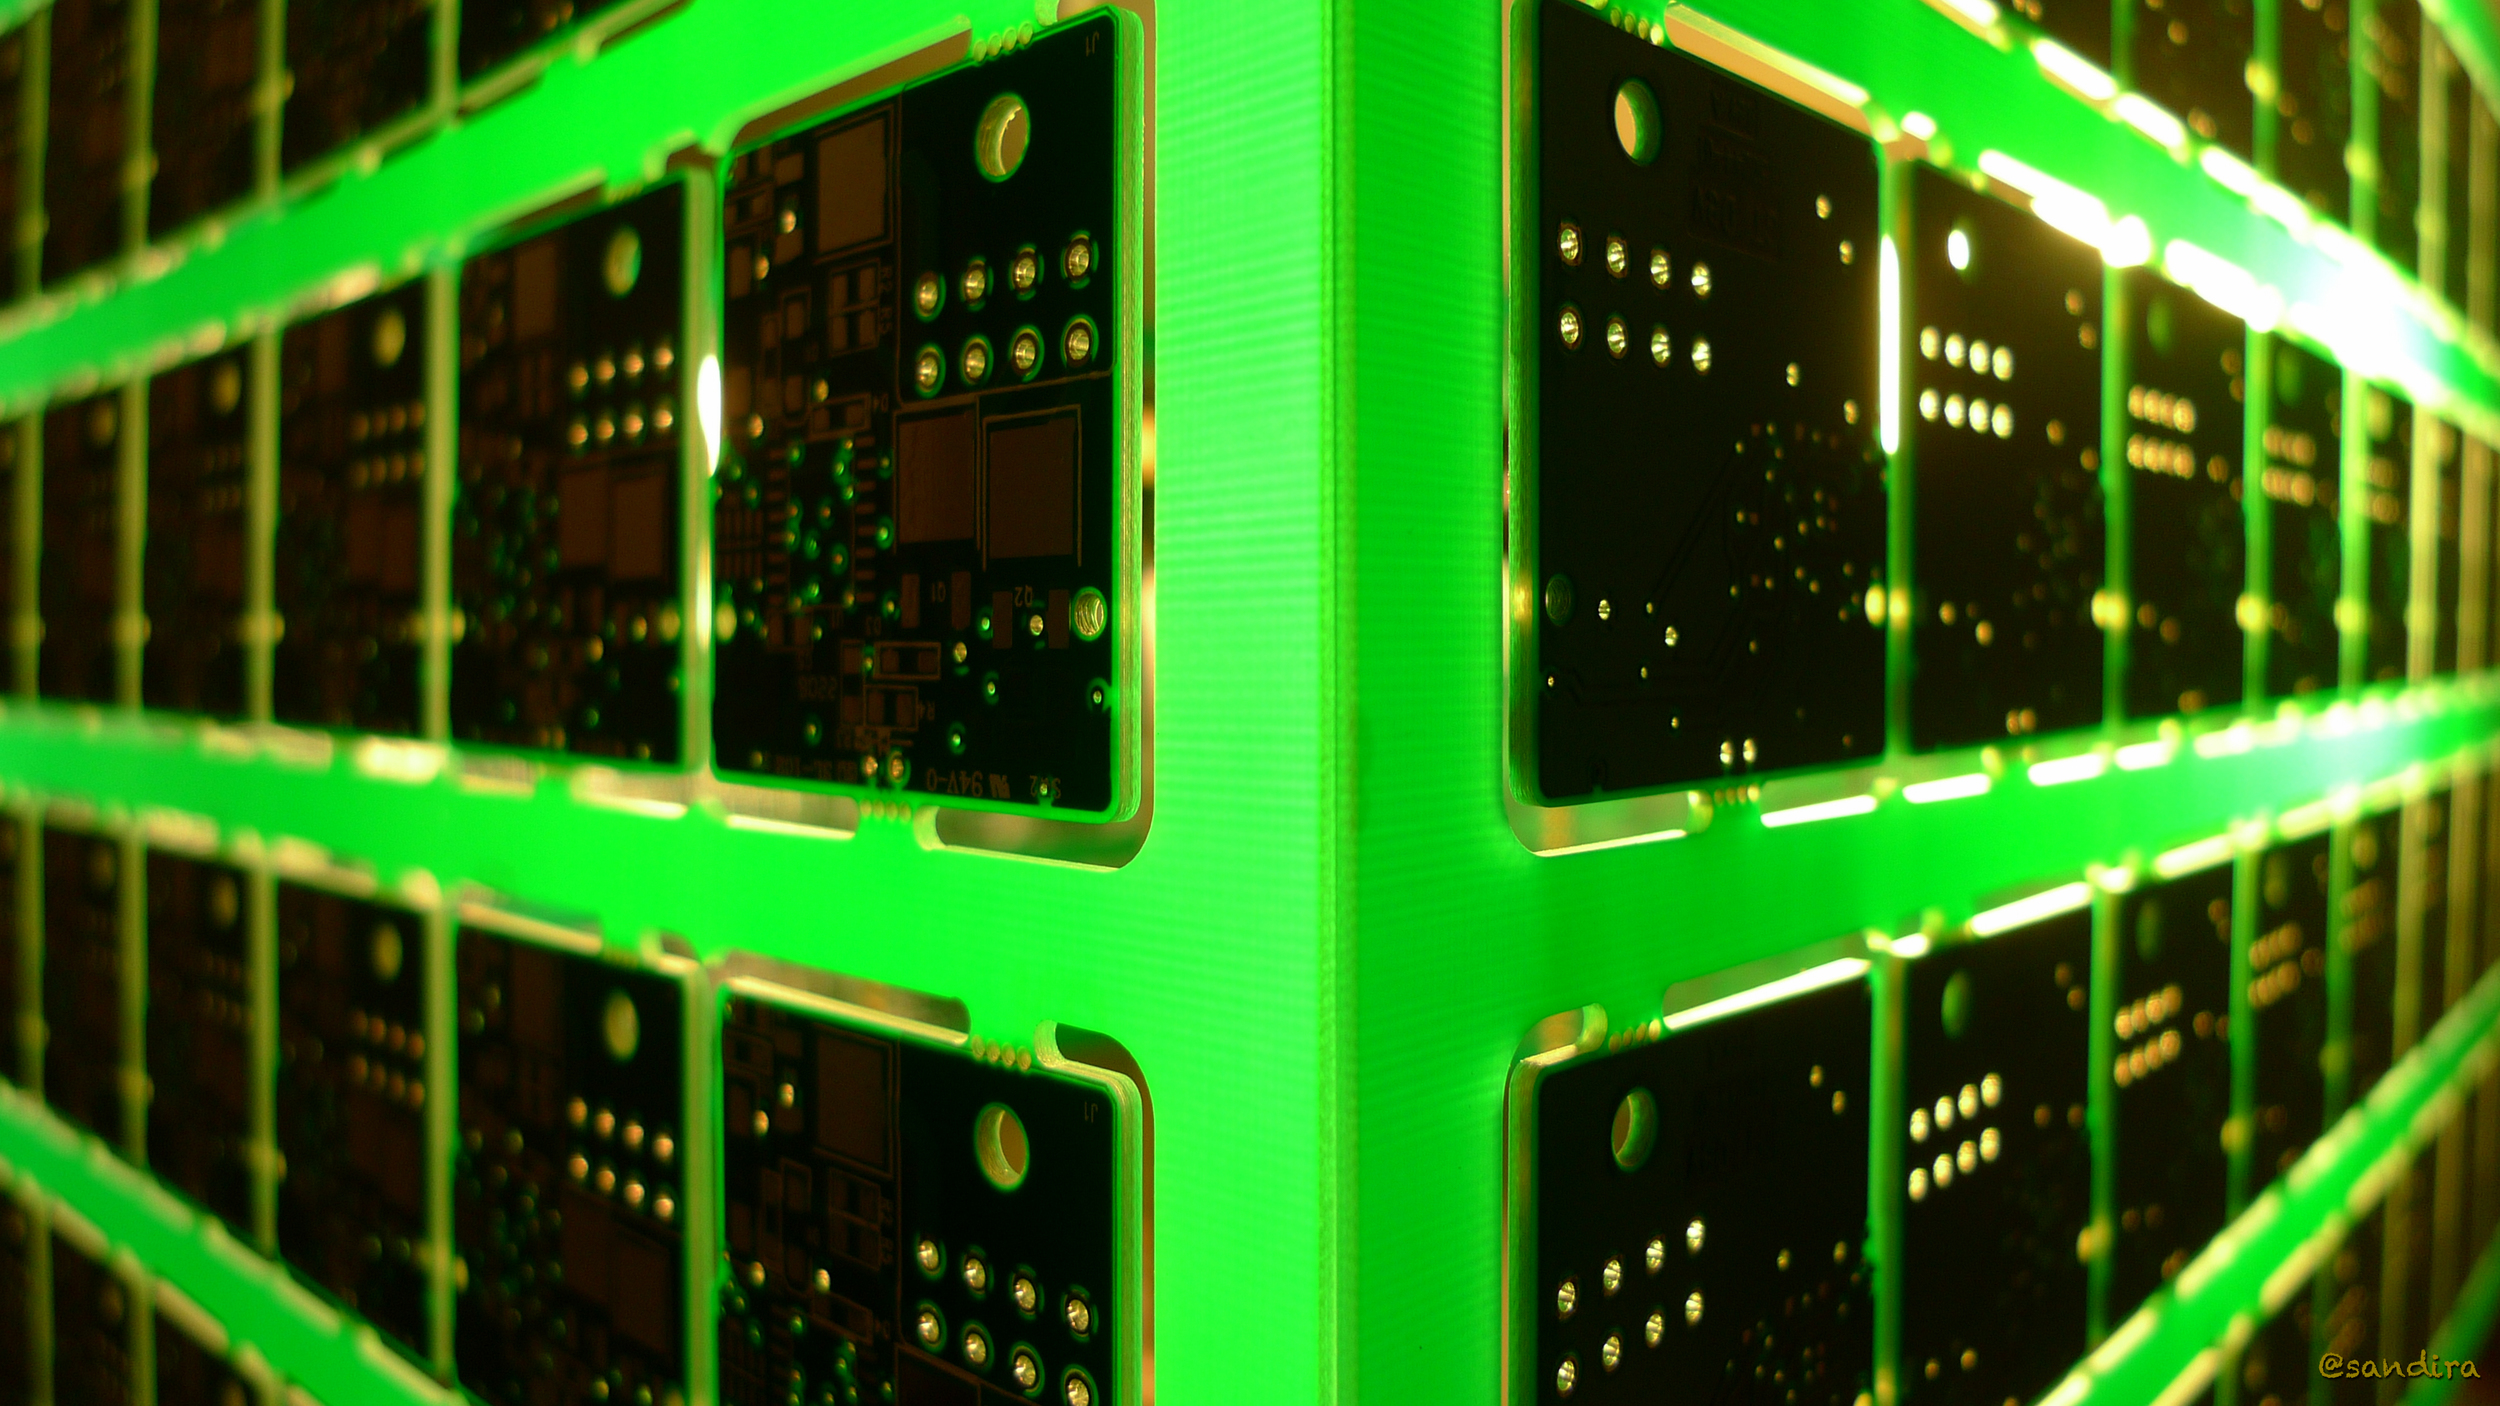 Circuitree - Seattle 2012 - Lampshade made with circuit boards